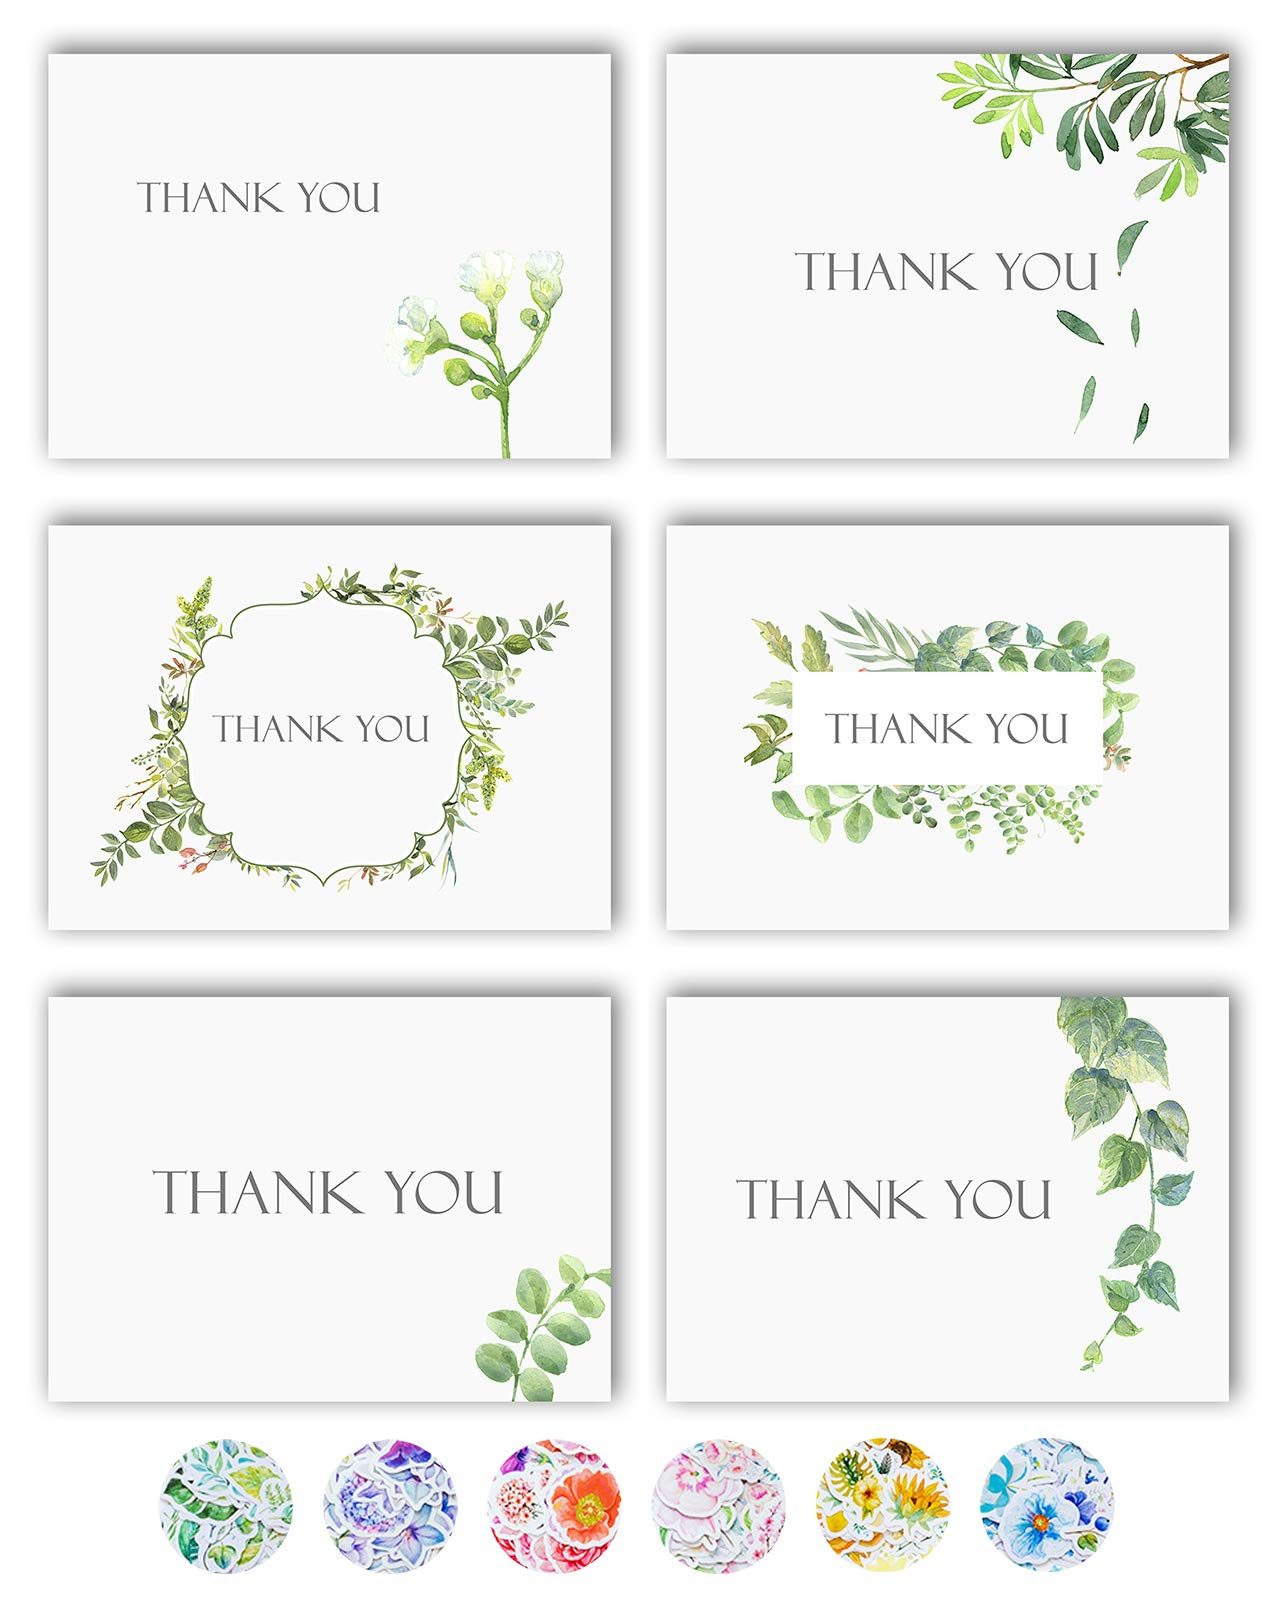 Amazon Com Thank You Cards 36 Watercolor Floral Thank You Notes Box Set With 40 White Envelopes And Bonus Stikers Blank Inside Perfect For Wedding Baby And Bridal Shower